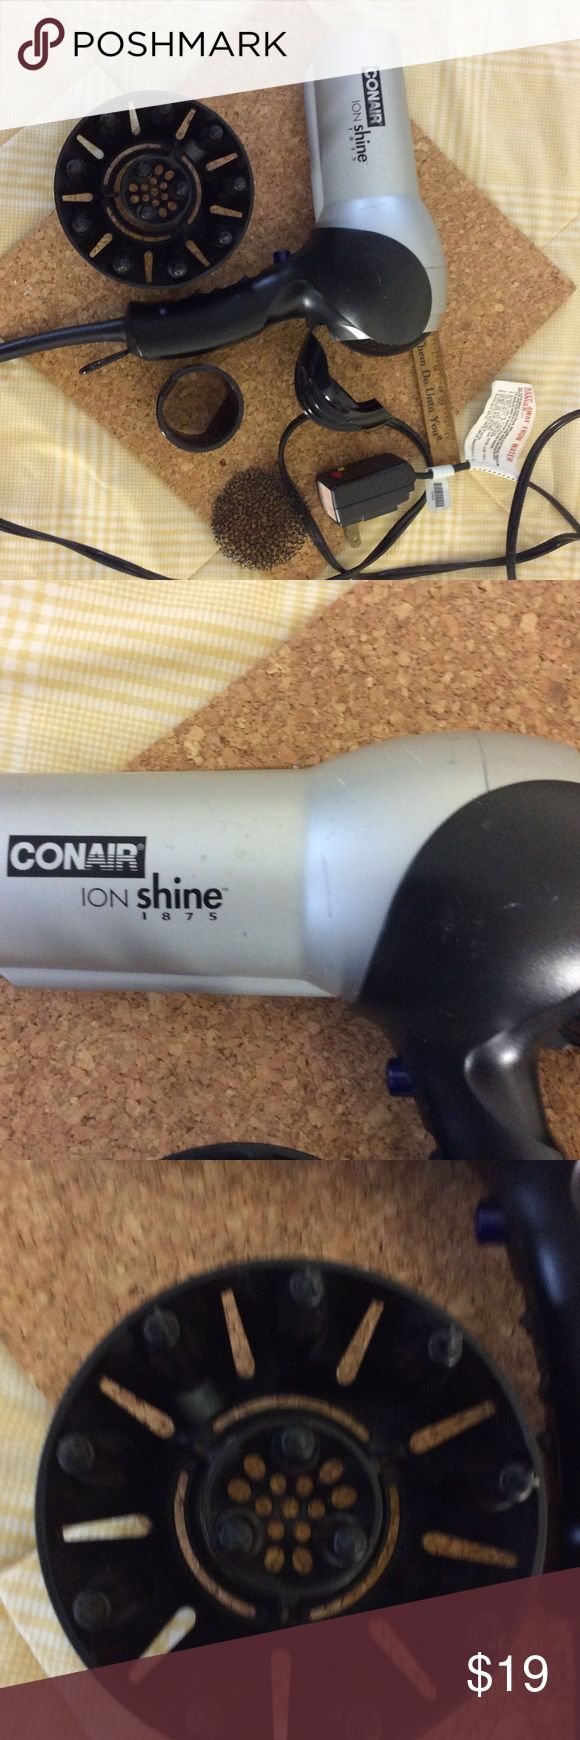 Con air hair dryer Con air hair dryer ION SHINE 1875. Works great. The filter screen has been cleaned and it comes with two attachments. All ready to take for college. conair Accessories